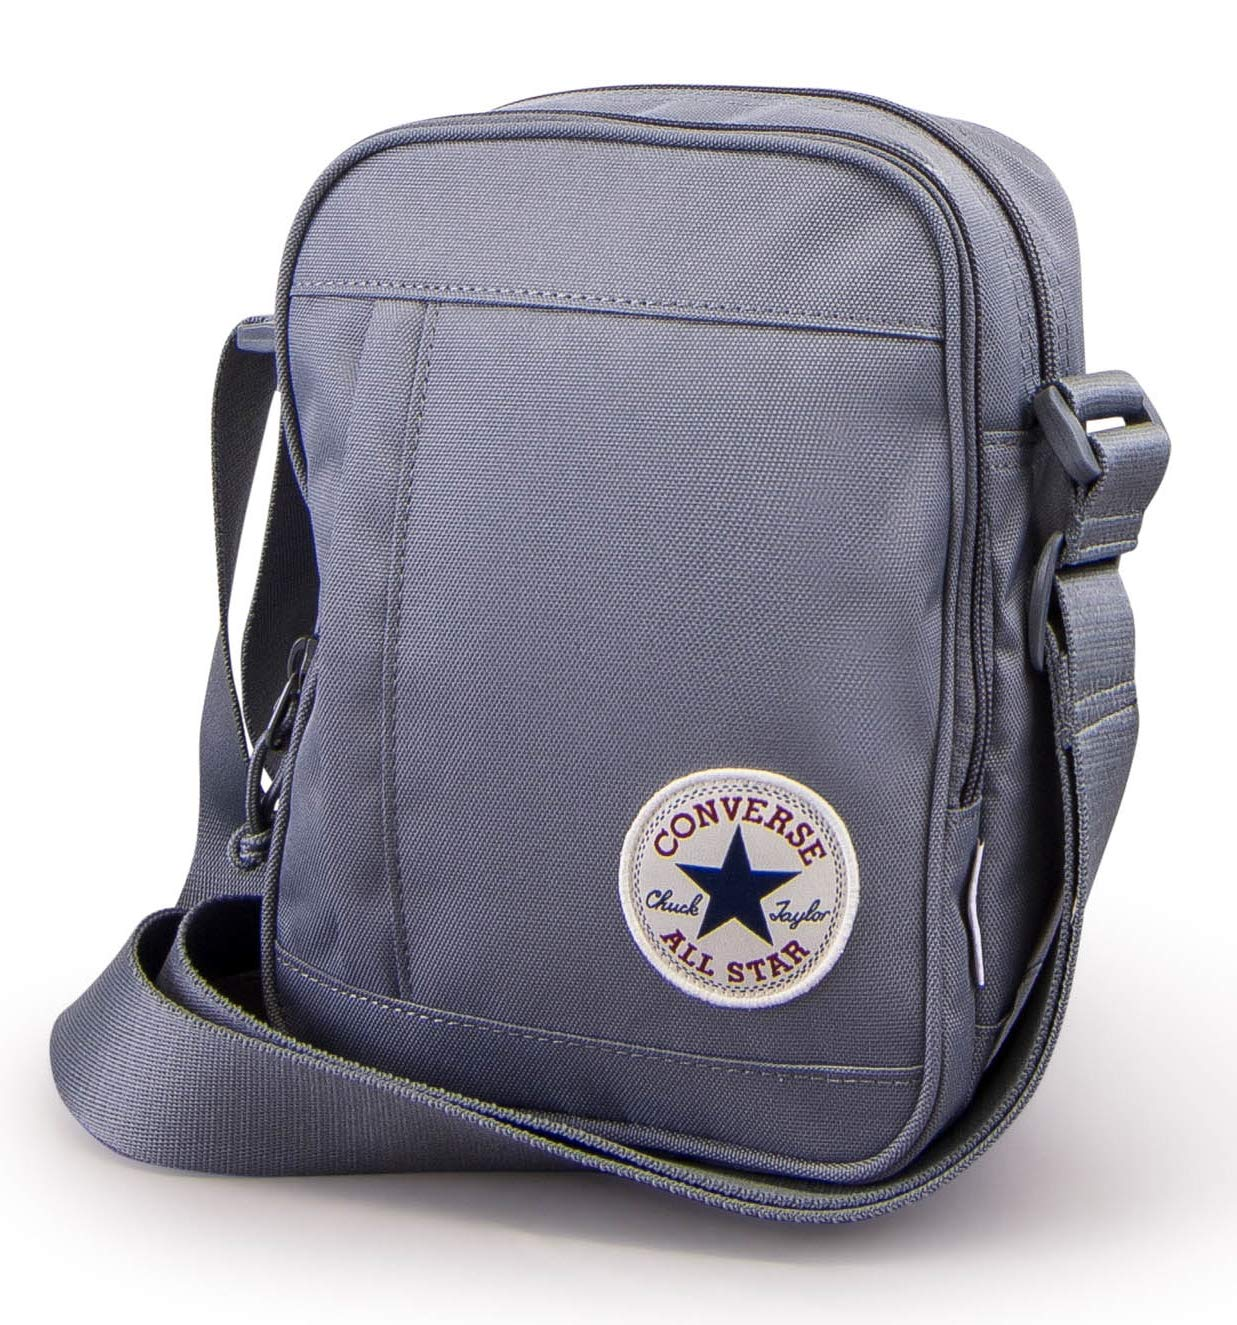 f0a9ffc602aa Buy Converse Crossbody Bag Cool Grey 10005989 039 Online at Low Prices in  India - Amazon.in